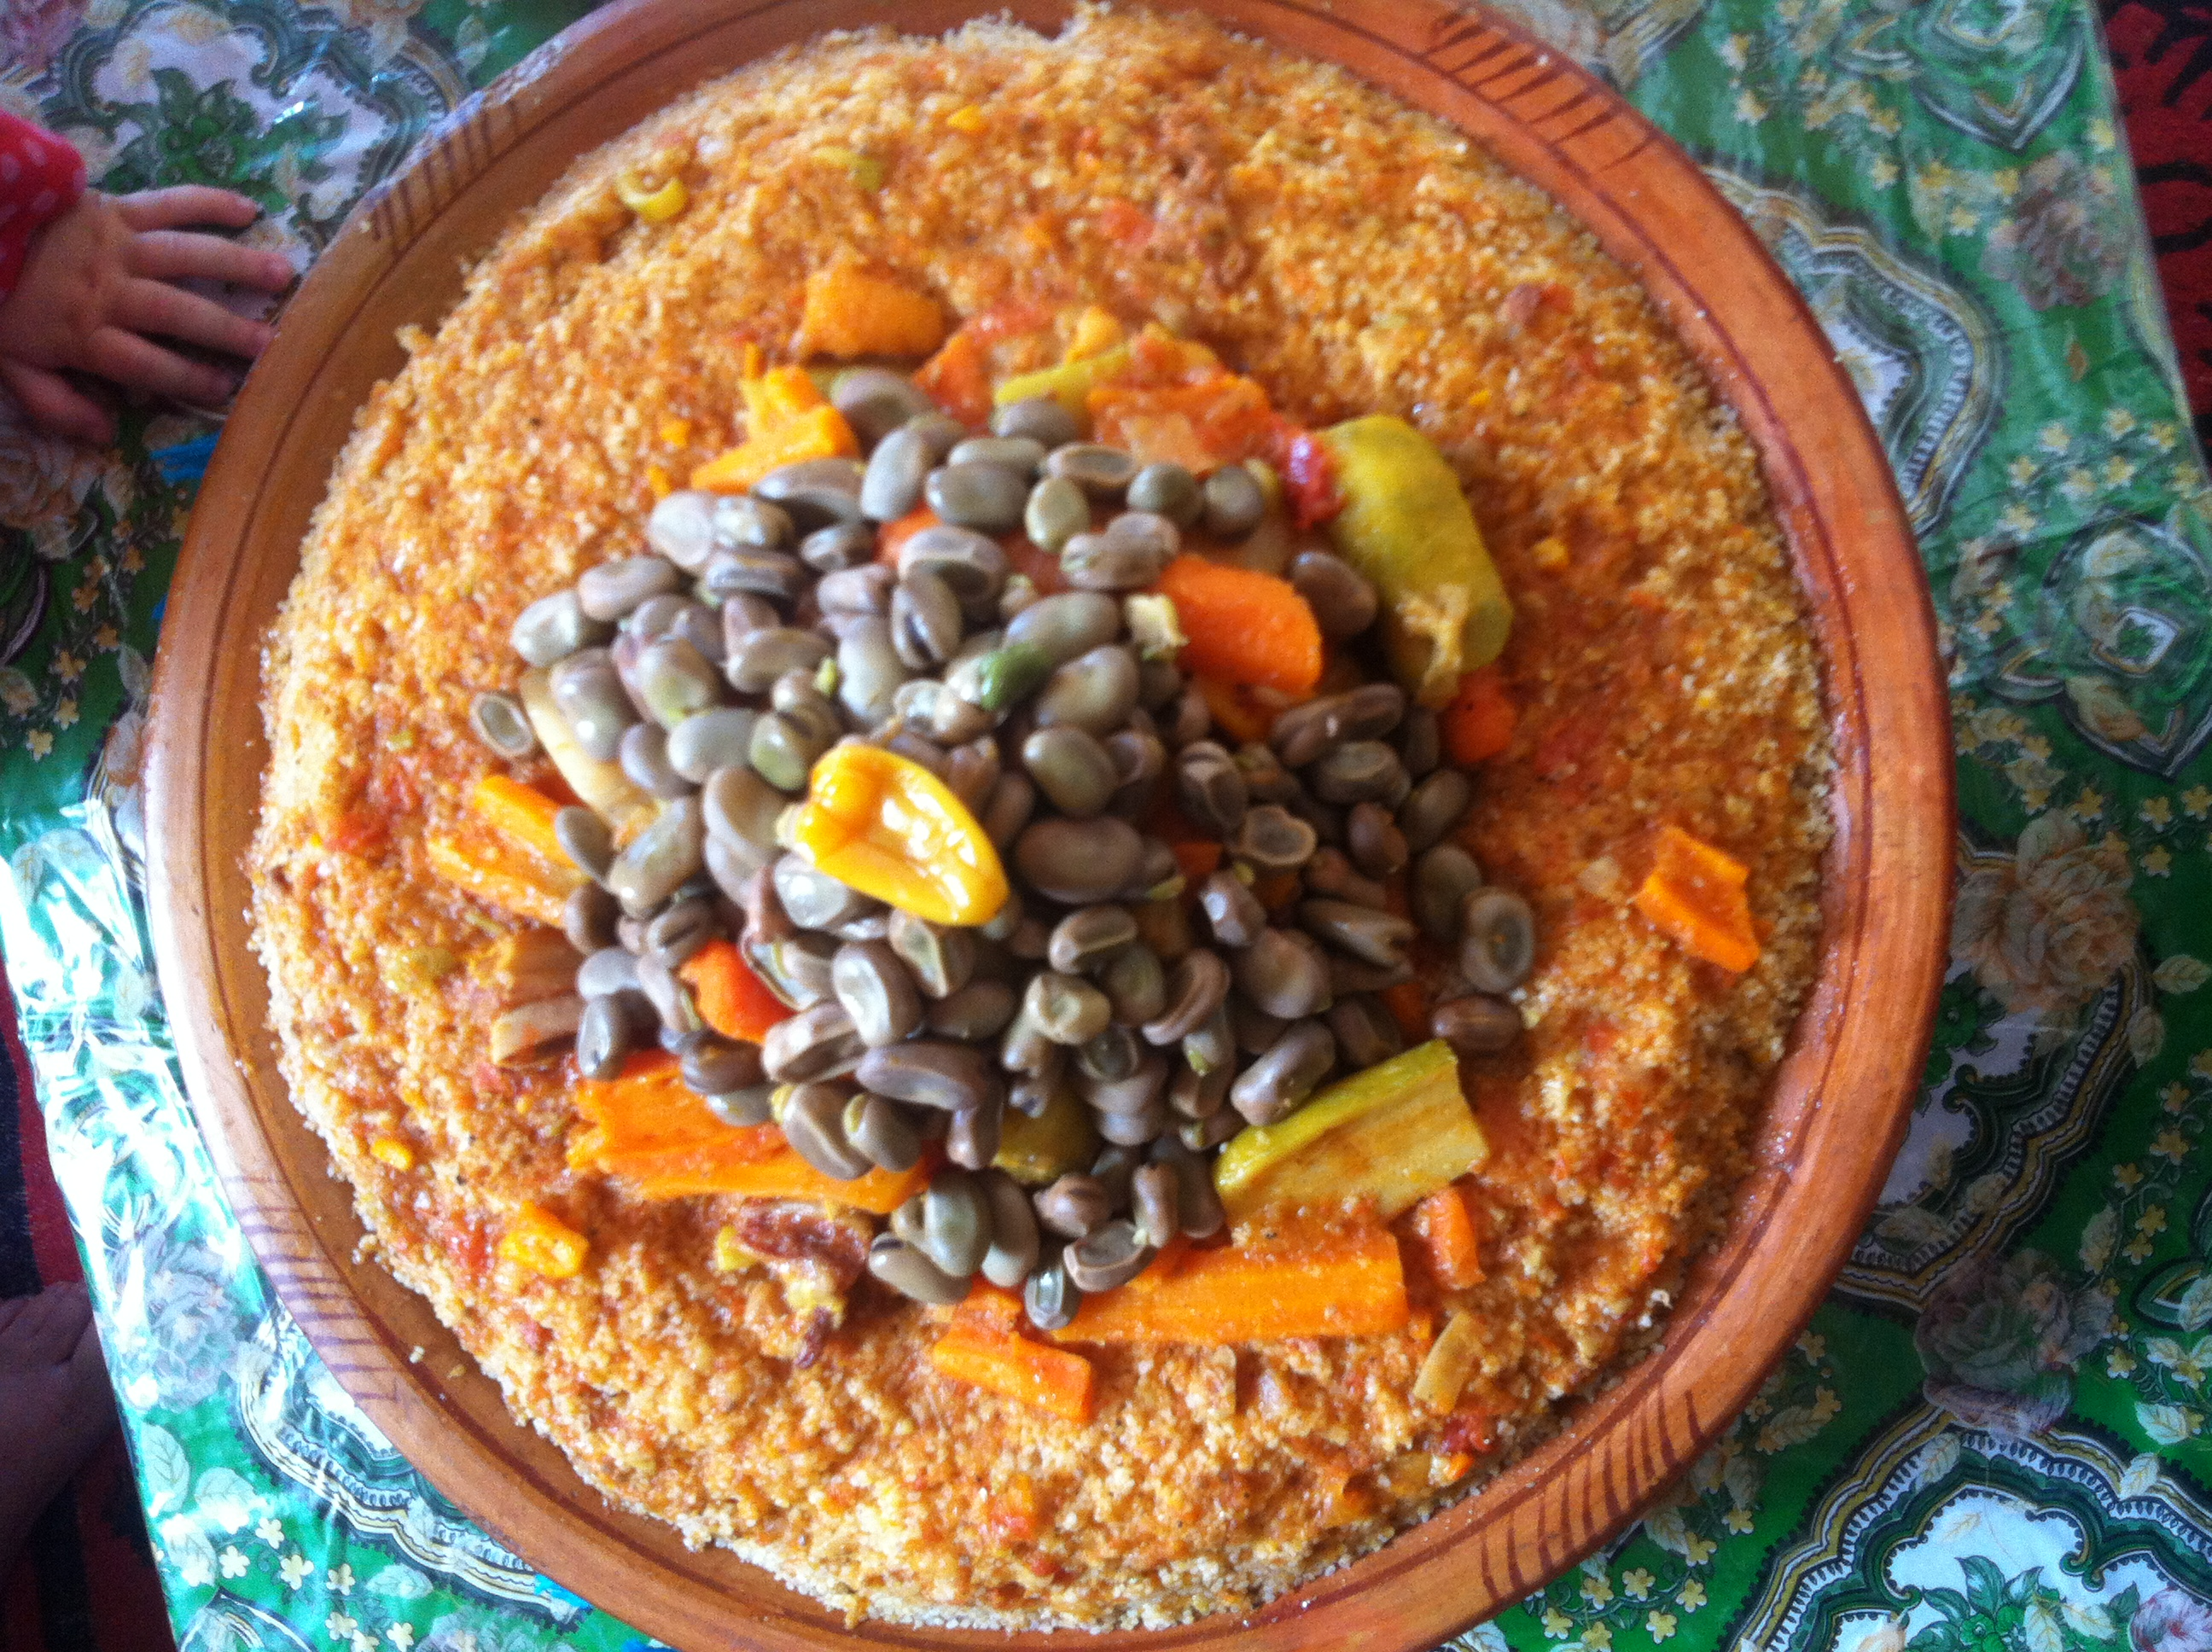 Marrakesh Foodie Tour: Culture, History, and Fun